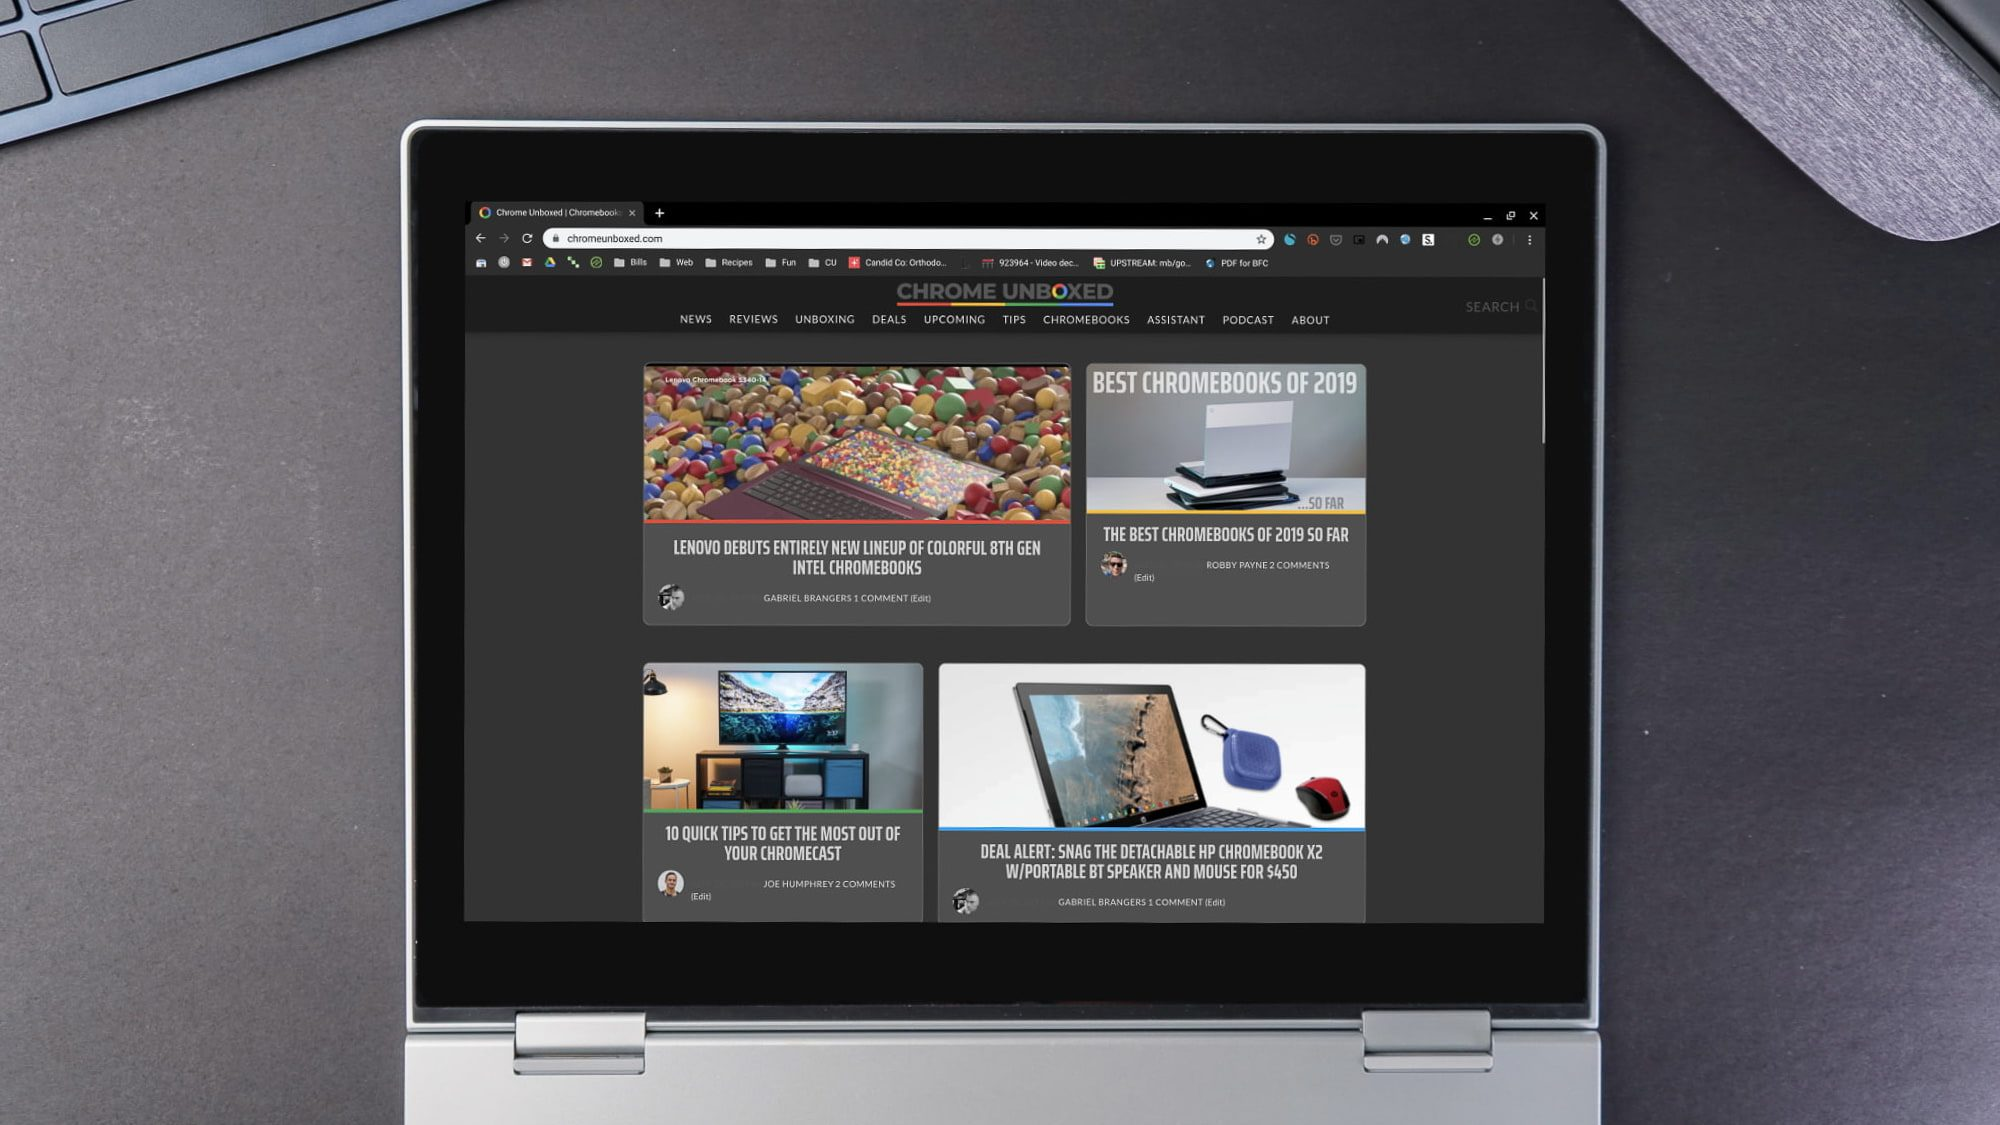 Chrome dark mode for web content coming soon to Chrome OS